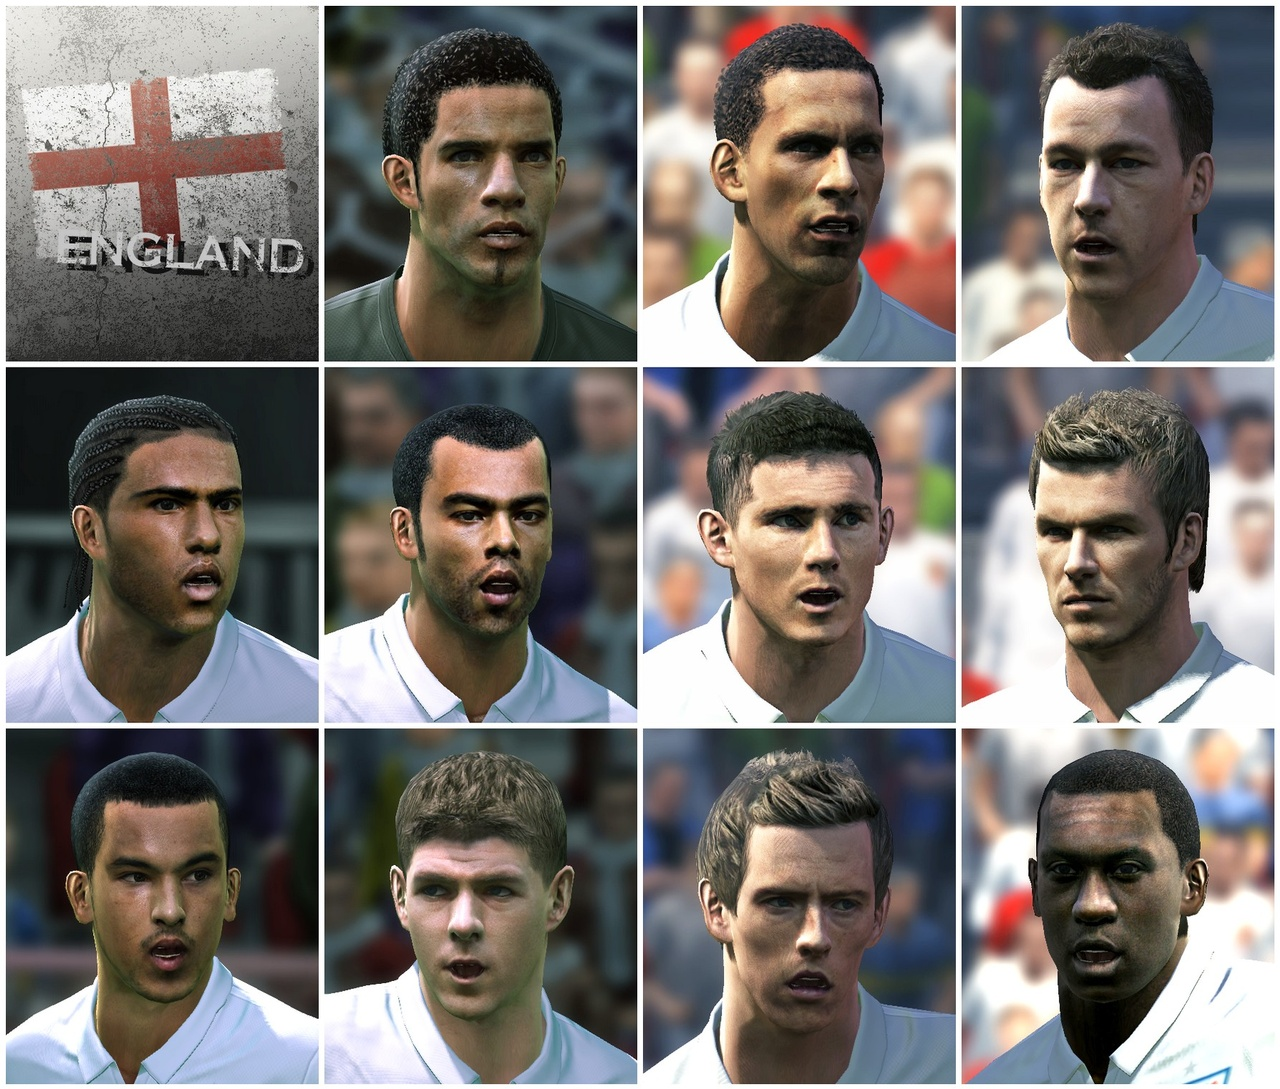 Player likenesses are much improved this year, including realistic-looking facial features.